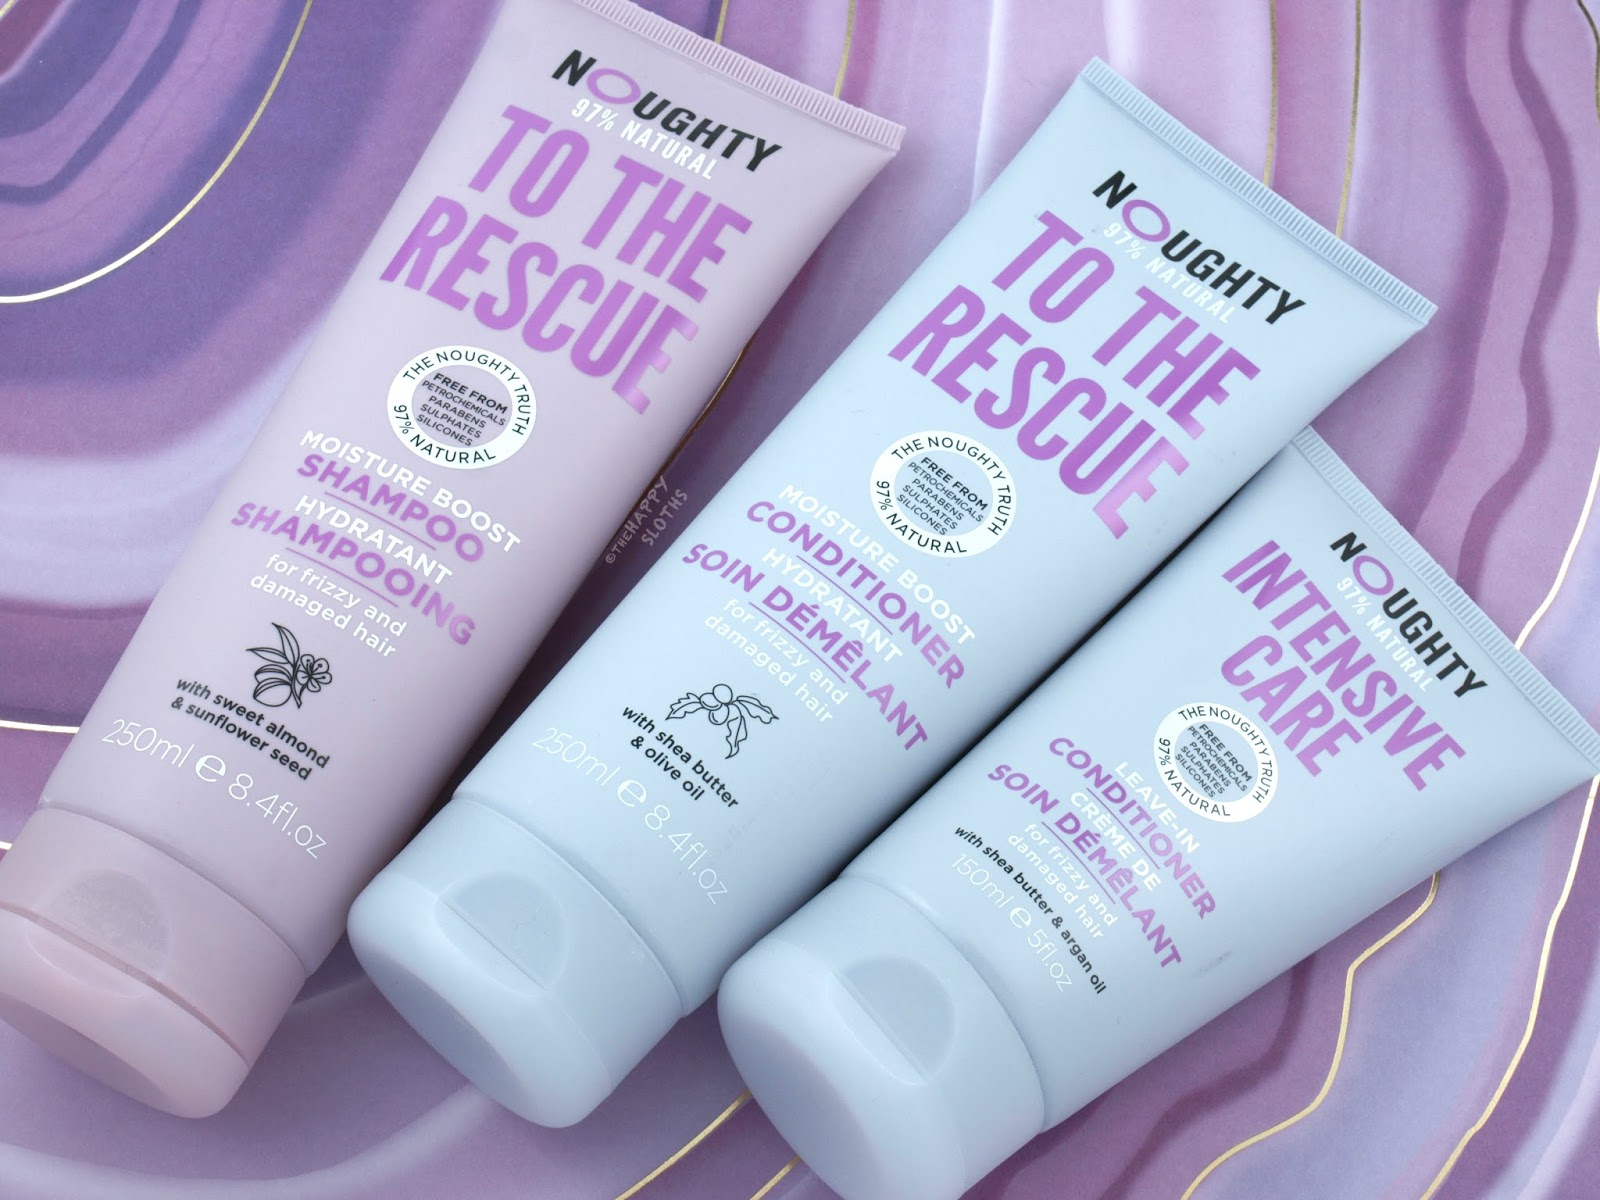 Noughty Haircare Review | To The Rescue Shampoo & Conditioner: Review